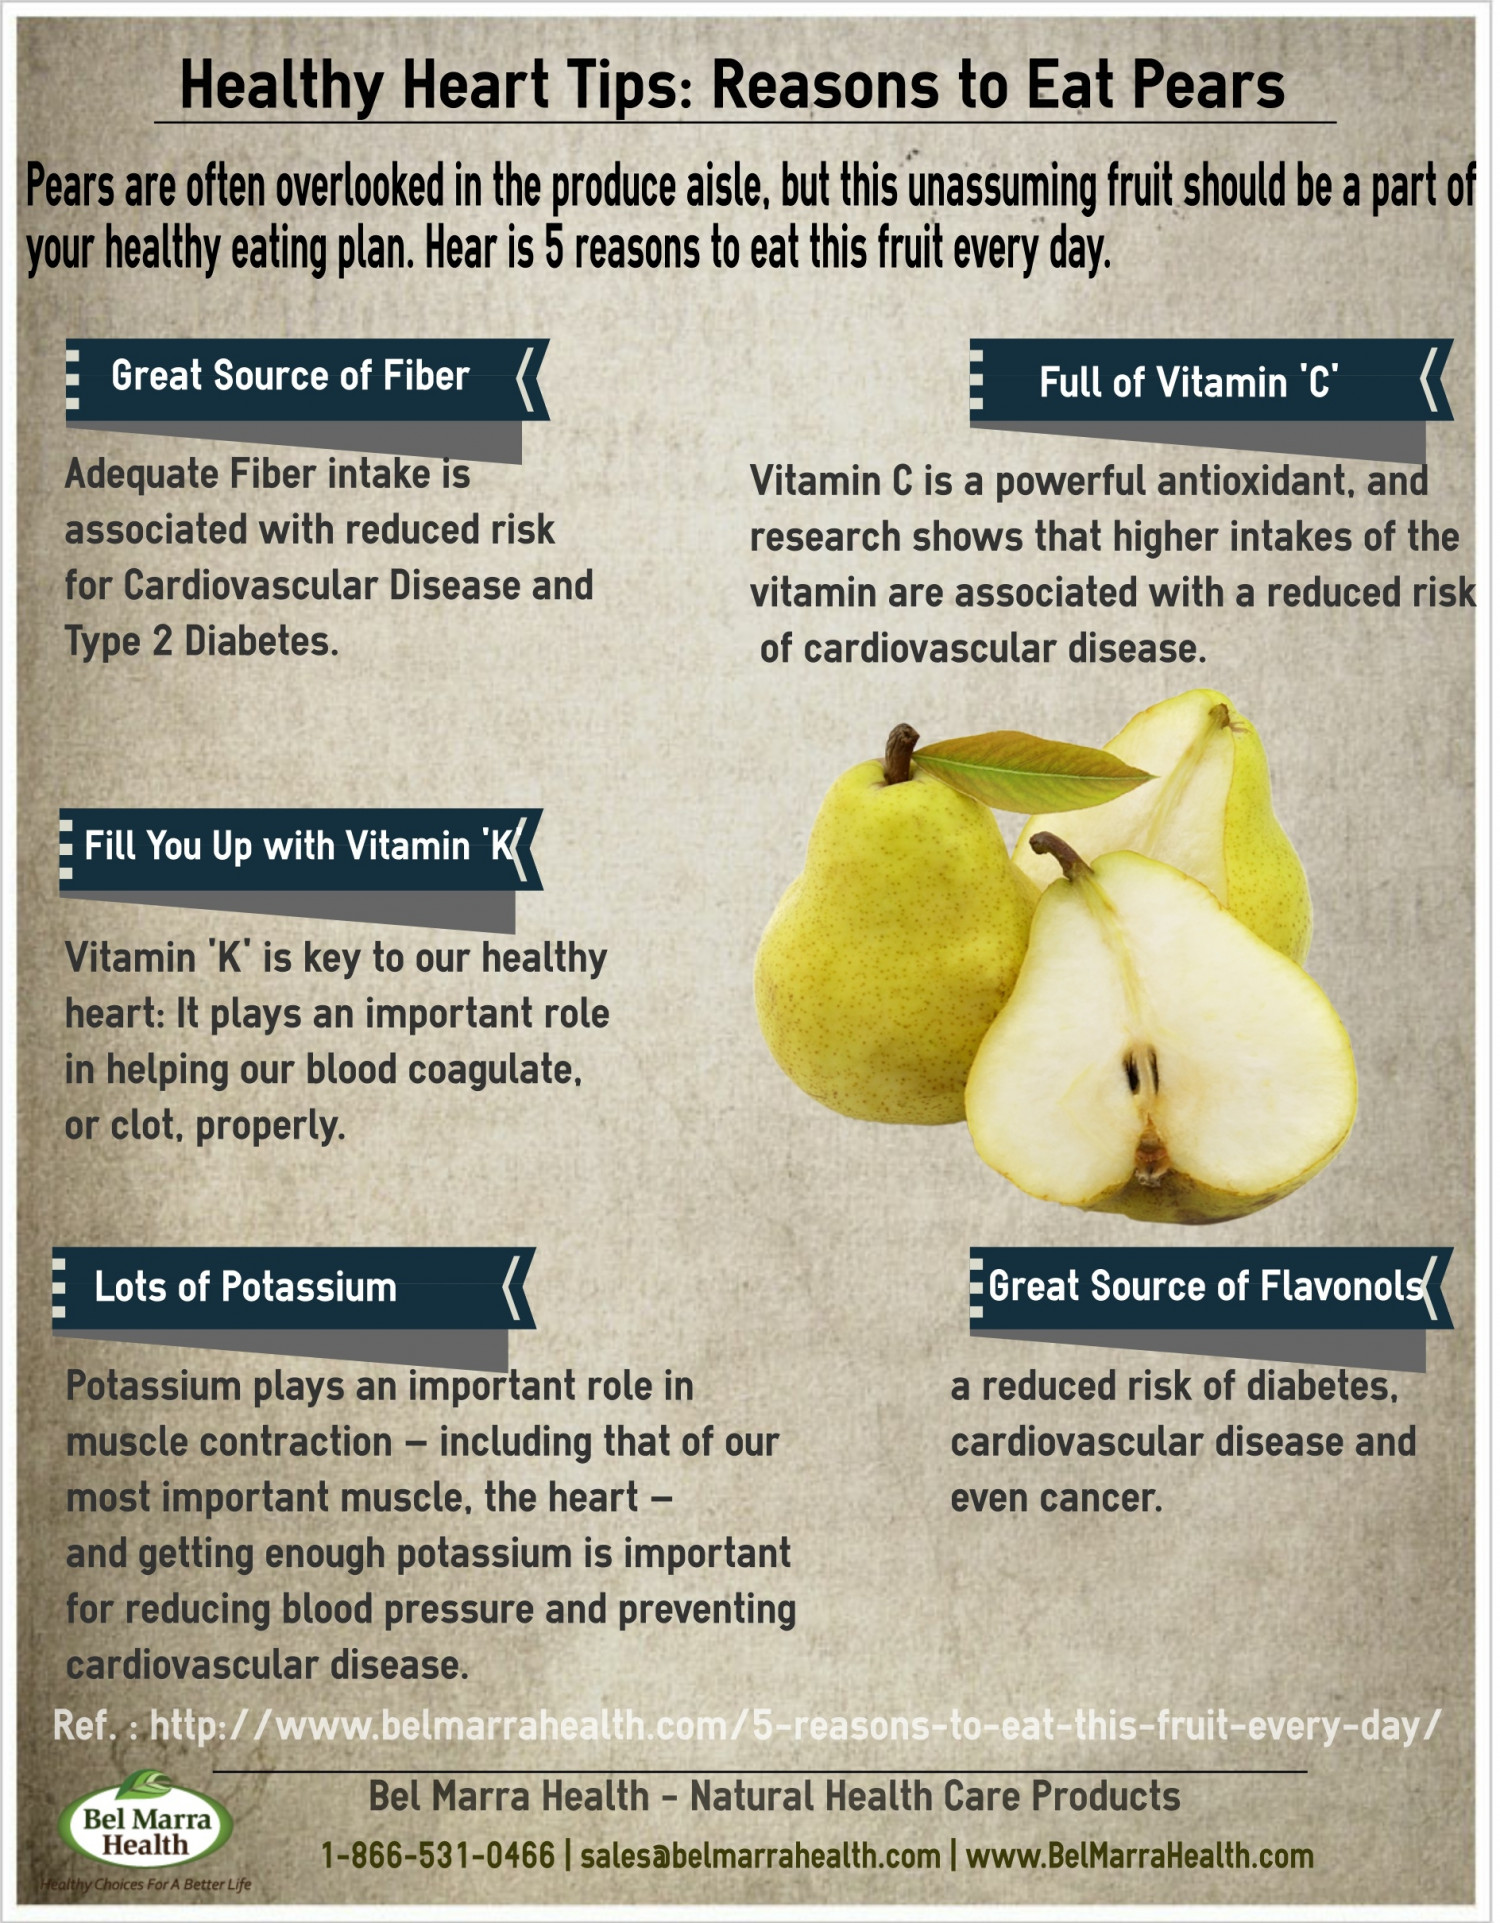 Healthy Heart Tips: 5 Reasons to eat Pears Fruit Daily Infographic